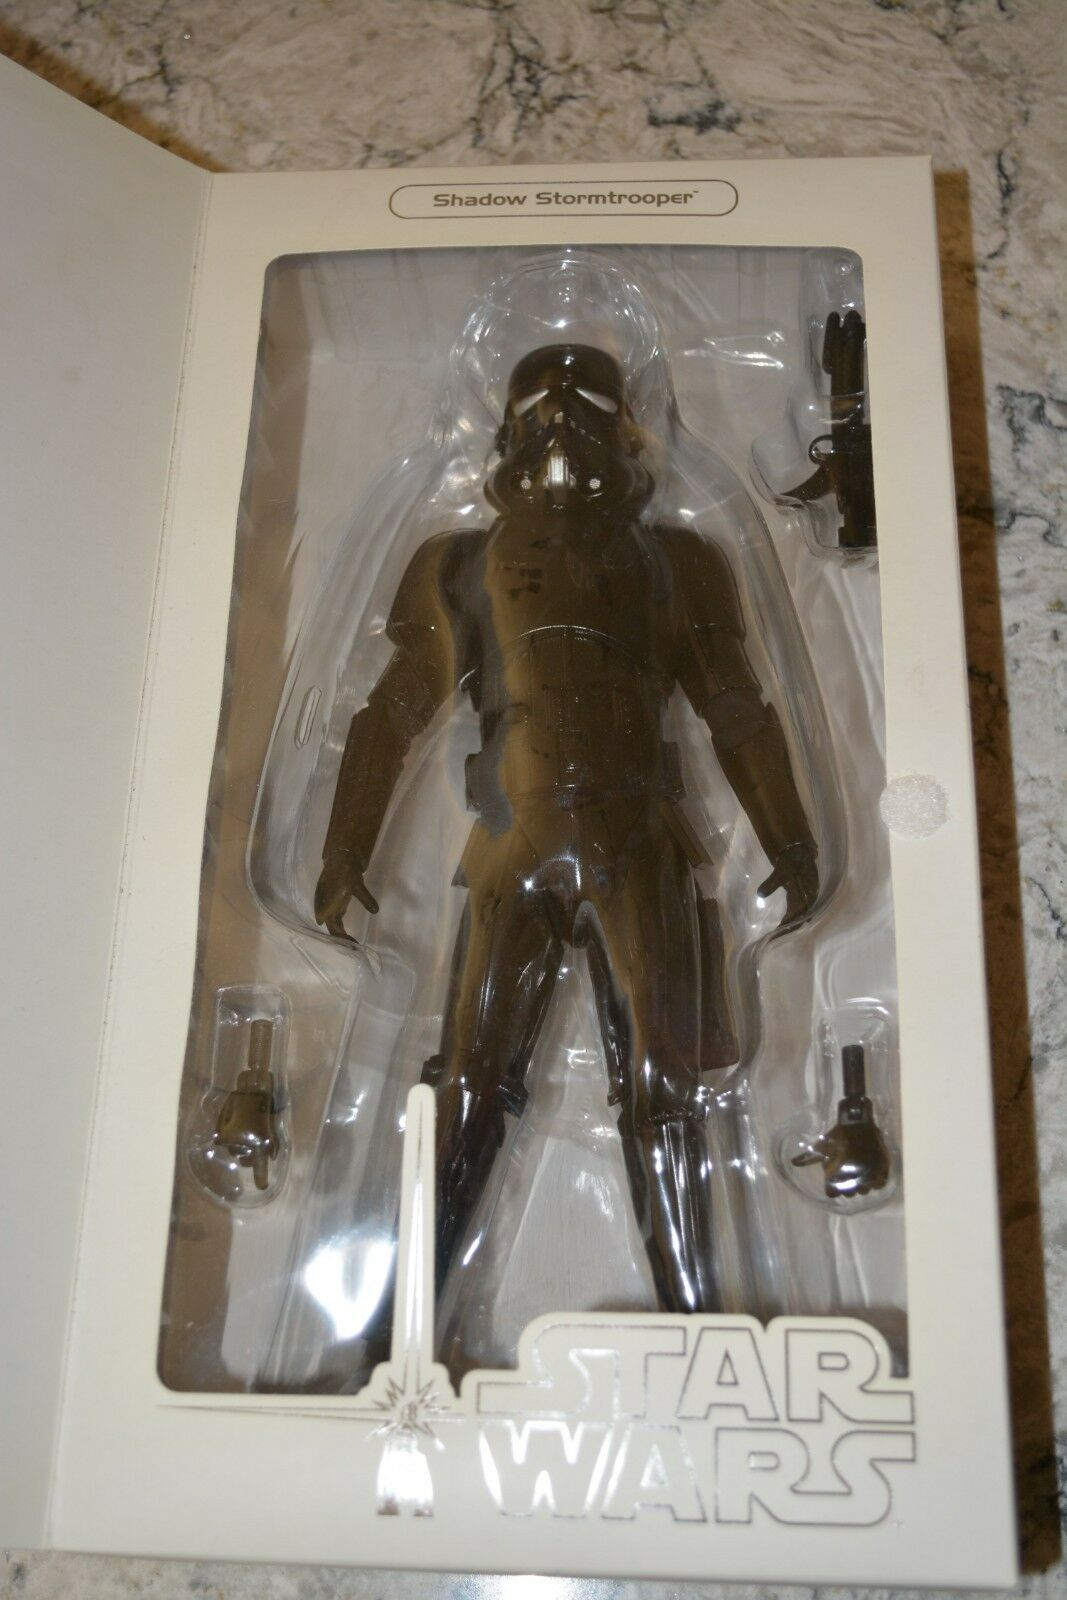 Medicom Star Wars Real Action Heroes 1/6 Scale Imperial Shadow Stormtrooper, NIB